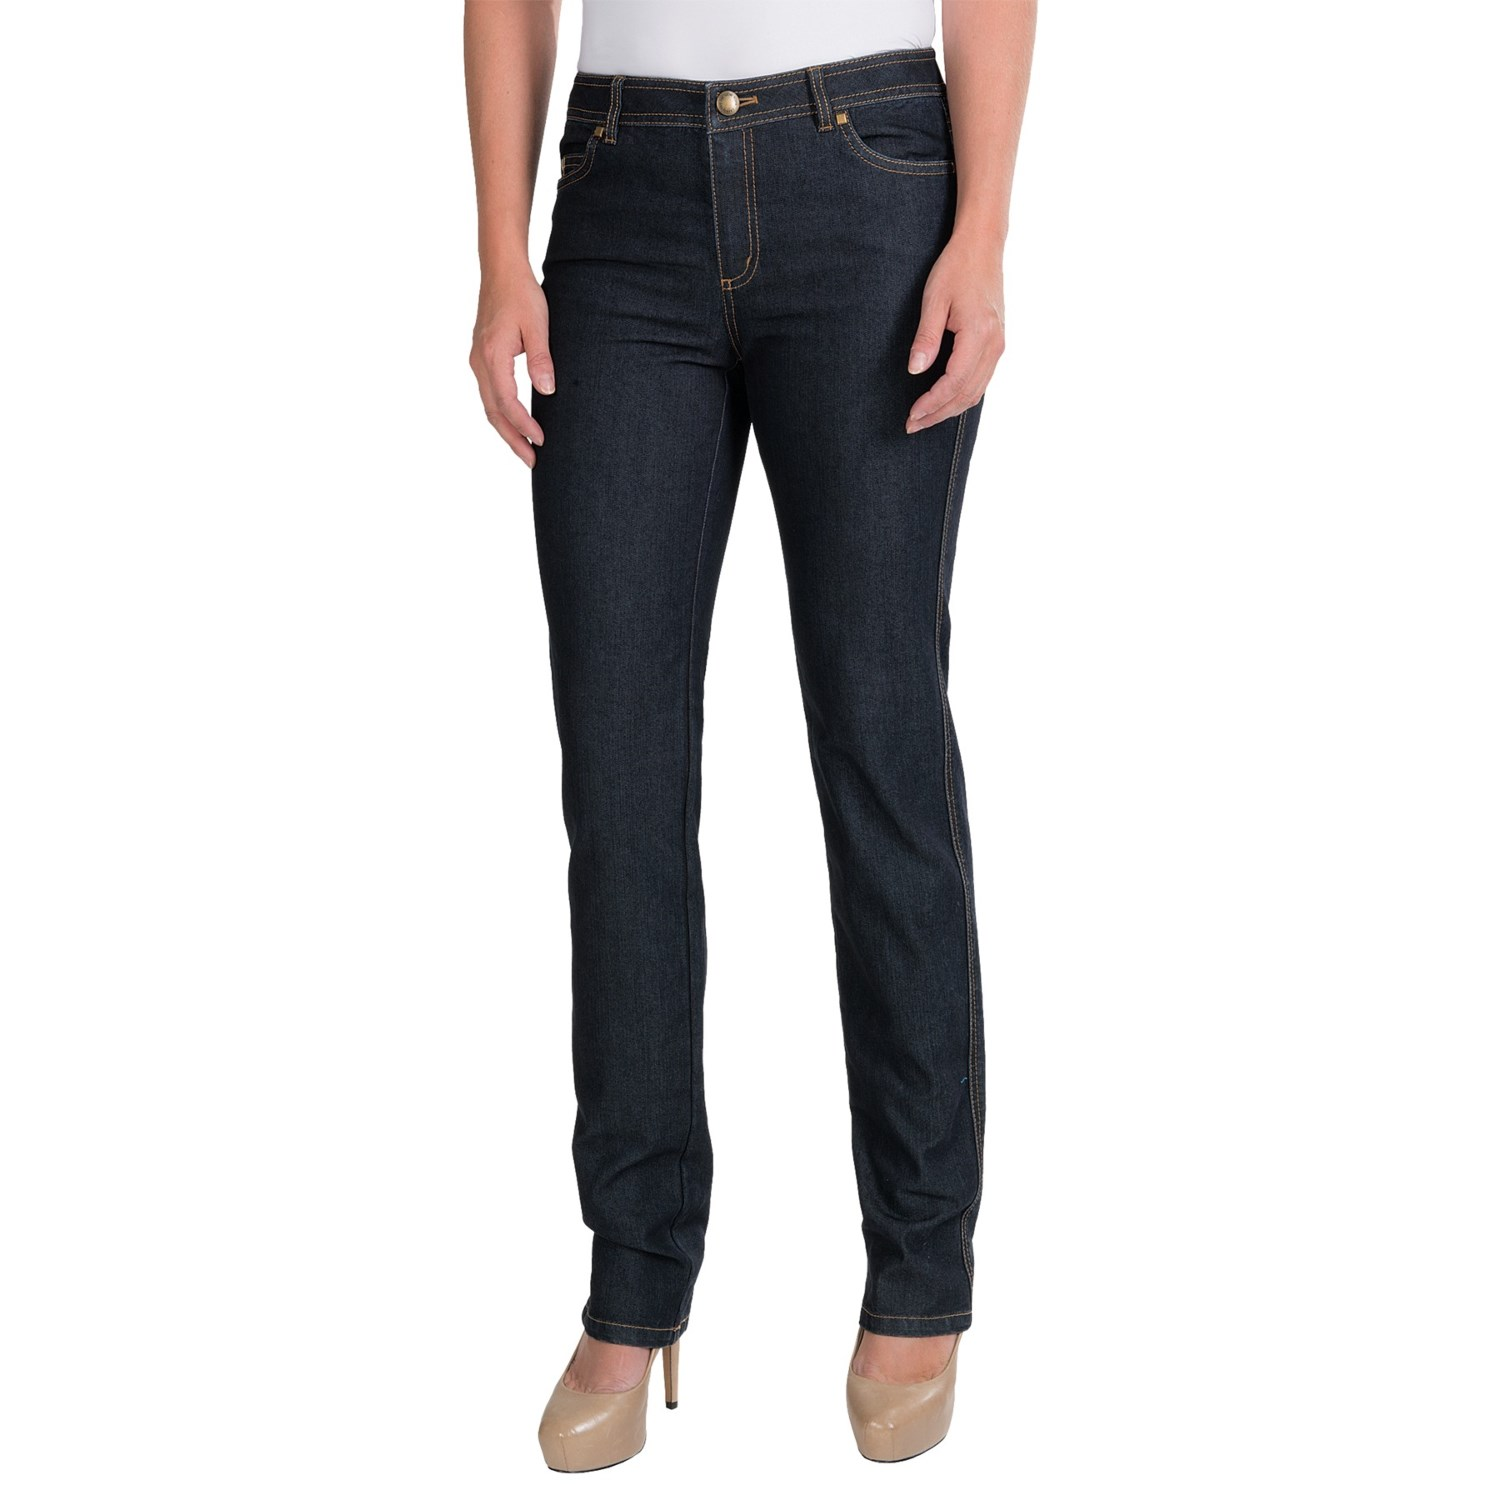 WOMEN'S SKINNY JEANS Skinny jeans are a staple in every modern wardrobe—and Levi's® skinny jeans for women are the best of the best. Not only do they flatter in all the right places, but they also come in a variety of shapes, sizes and washes to suit every woman's style.